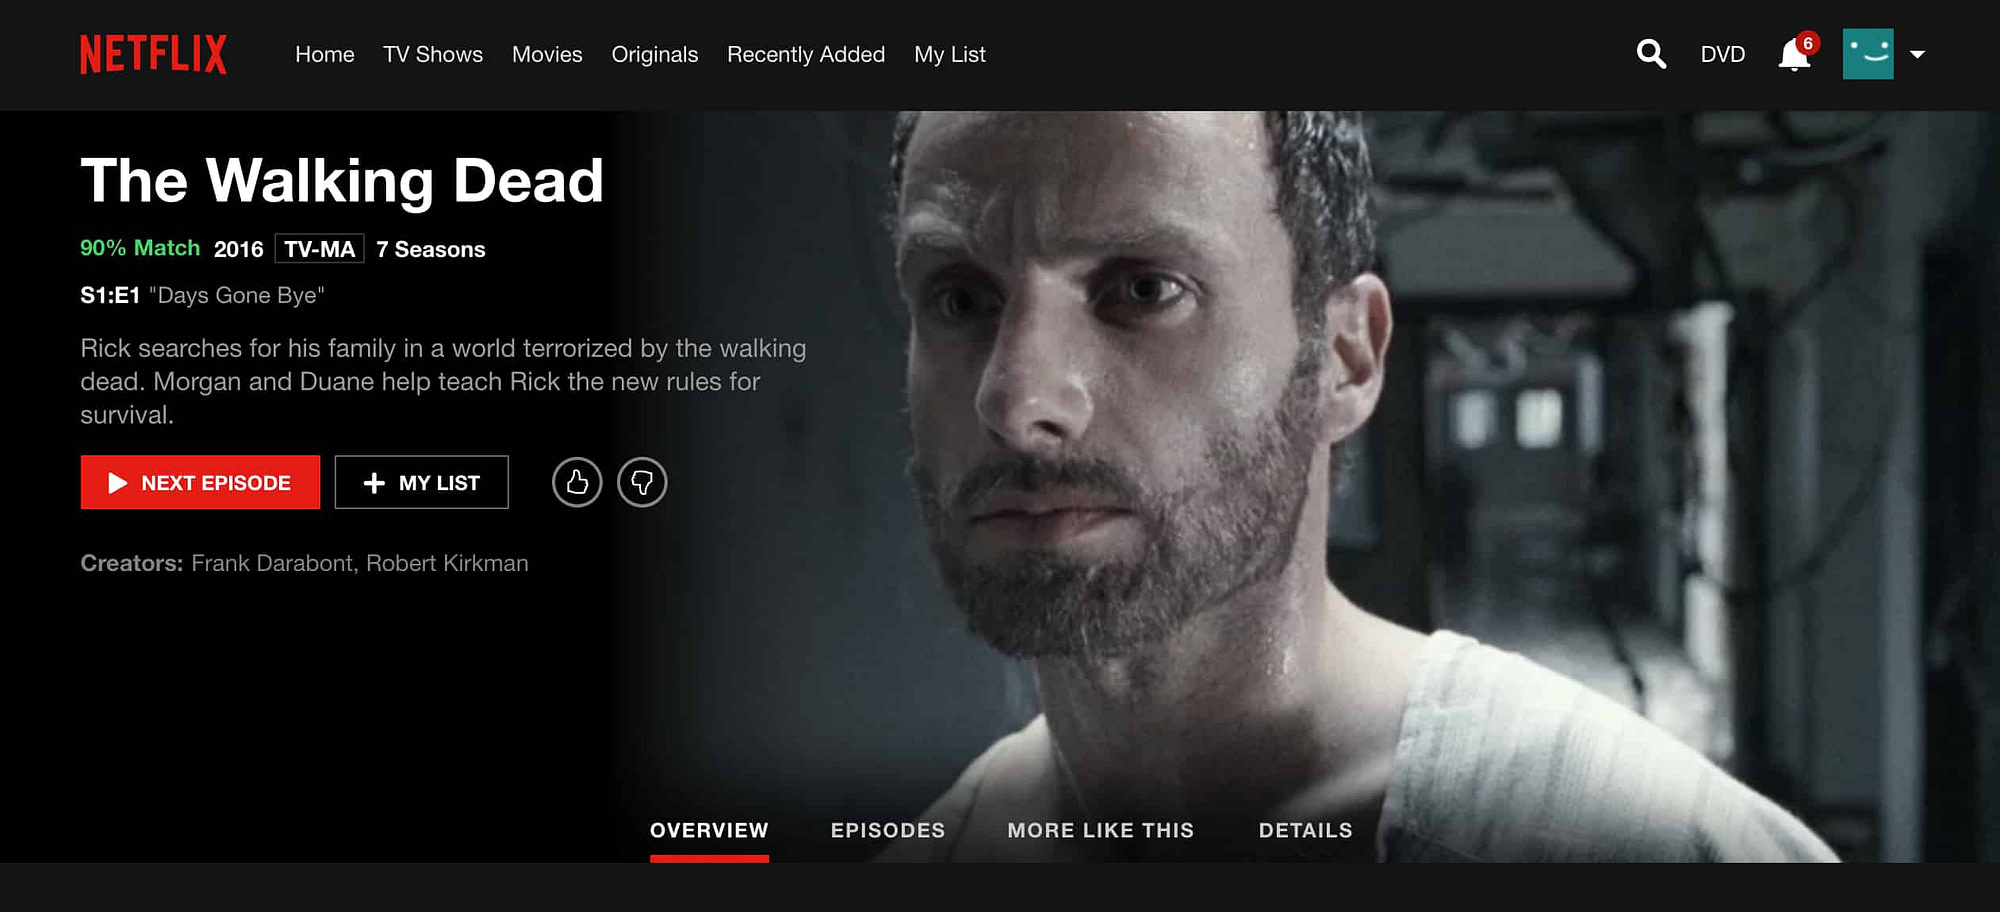 Netflix TWD Splash Screen